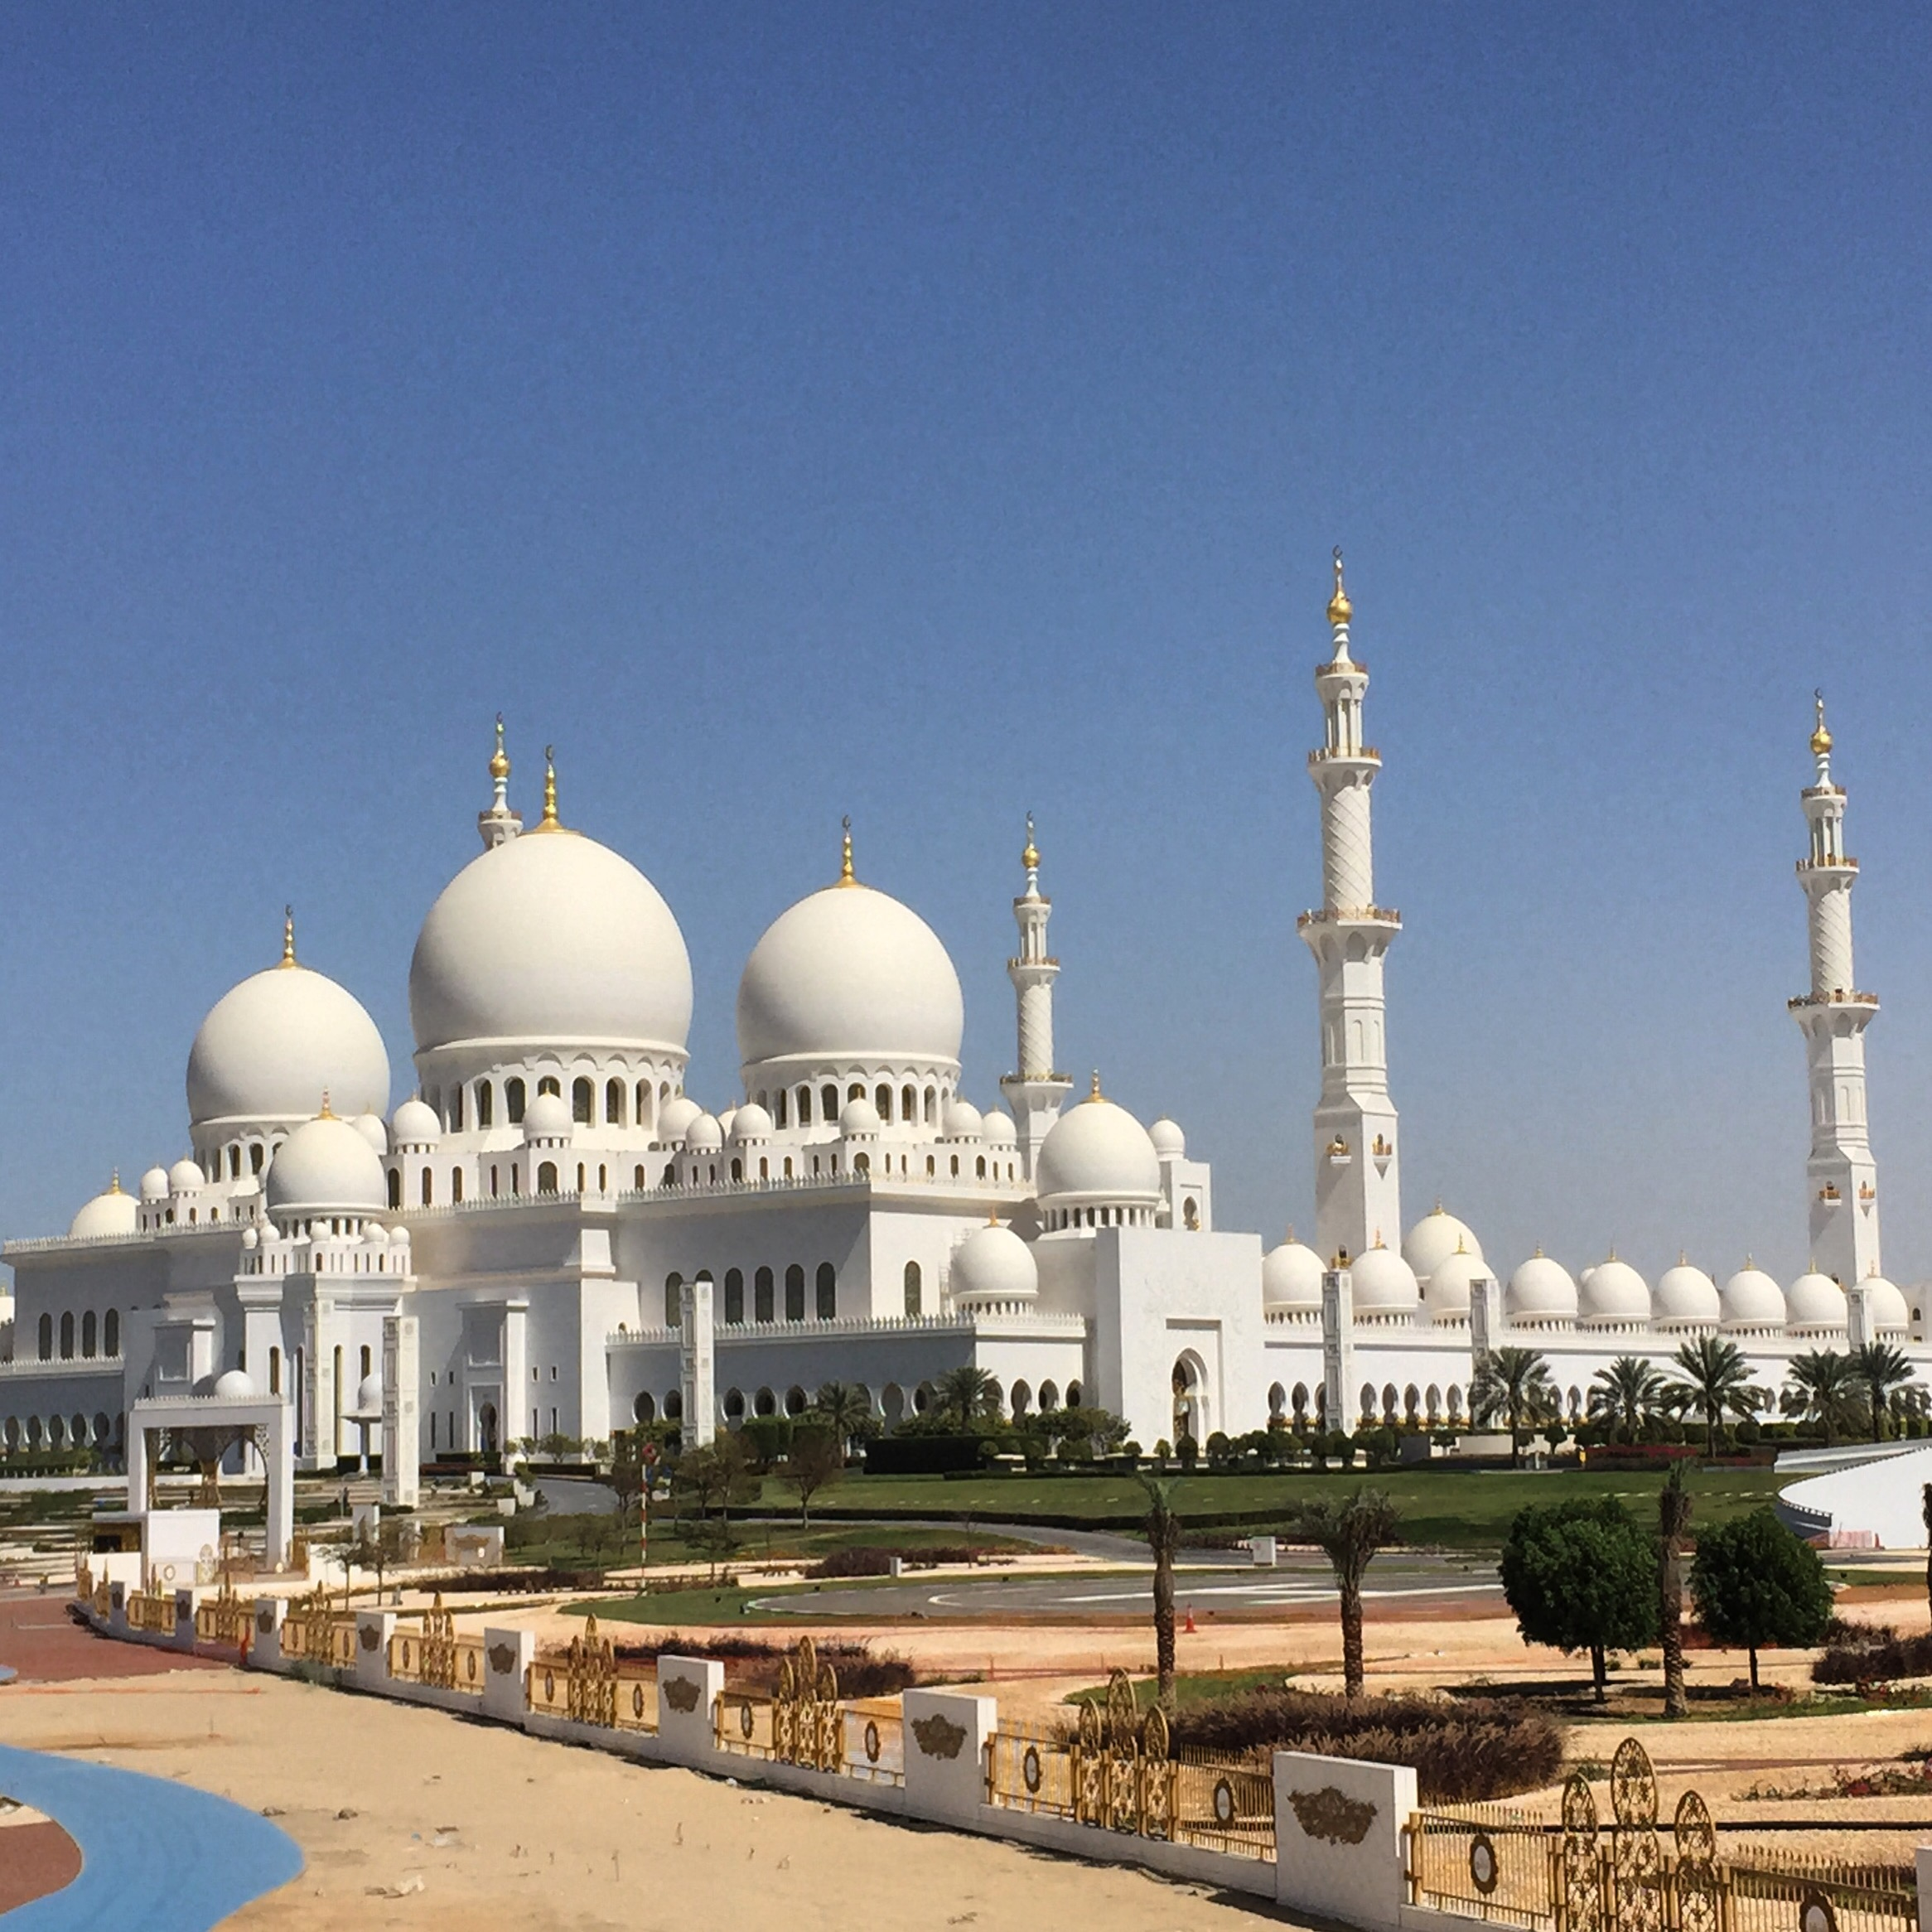 Sheikh Zayed Grand Mosque (Arabic: جامع الشيخ زايد الكبير‎) is located in Abu Dhabi